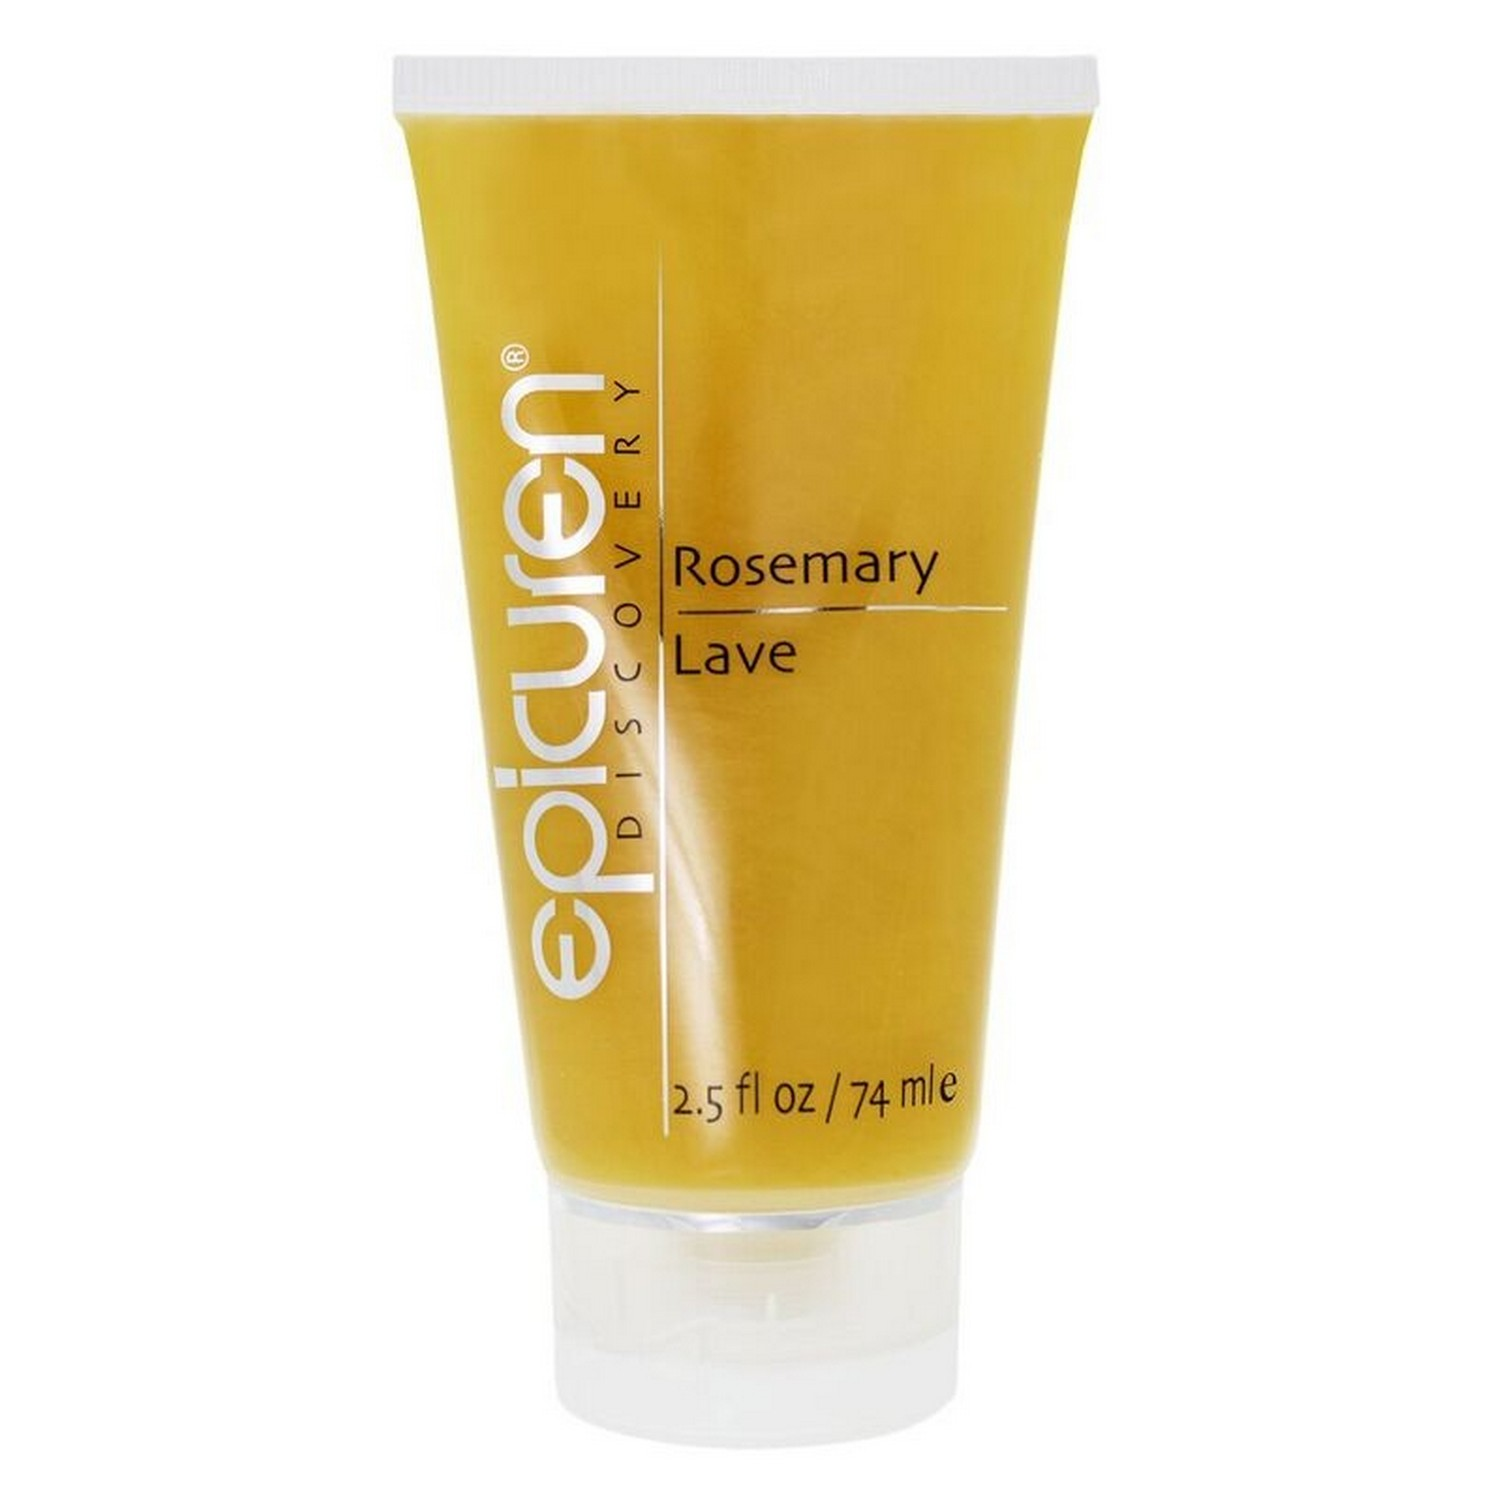 epicuren Discovery Rosemary Lave Body Cleanser (8.4 fl oz / 250 ml)